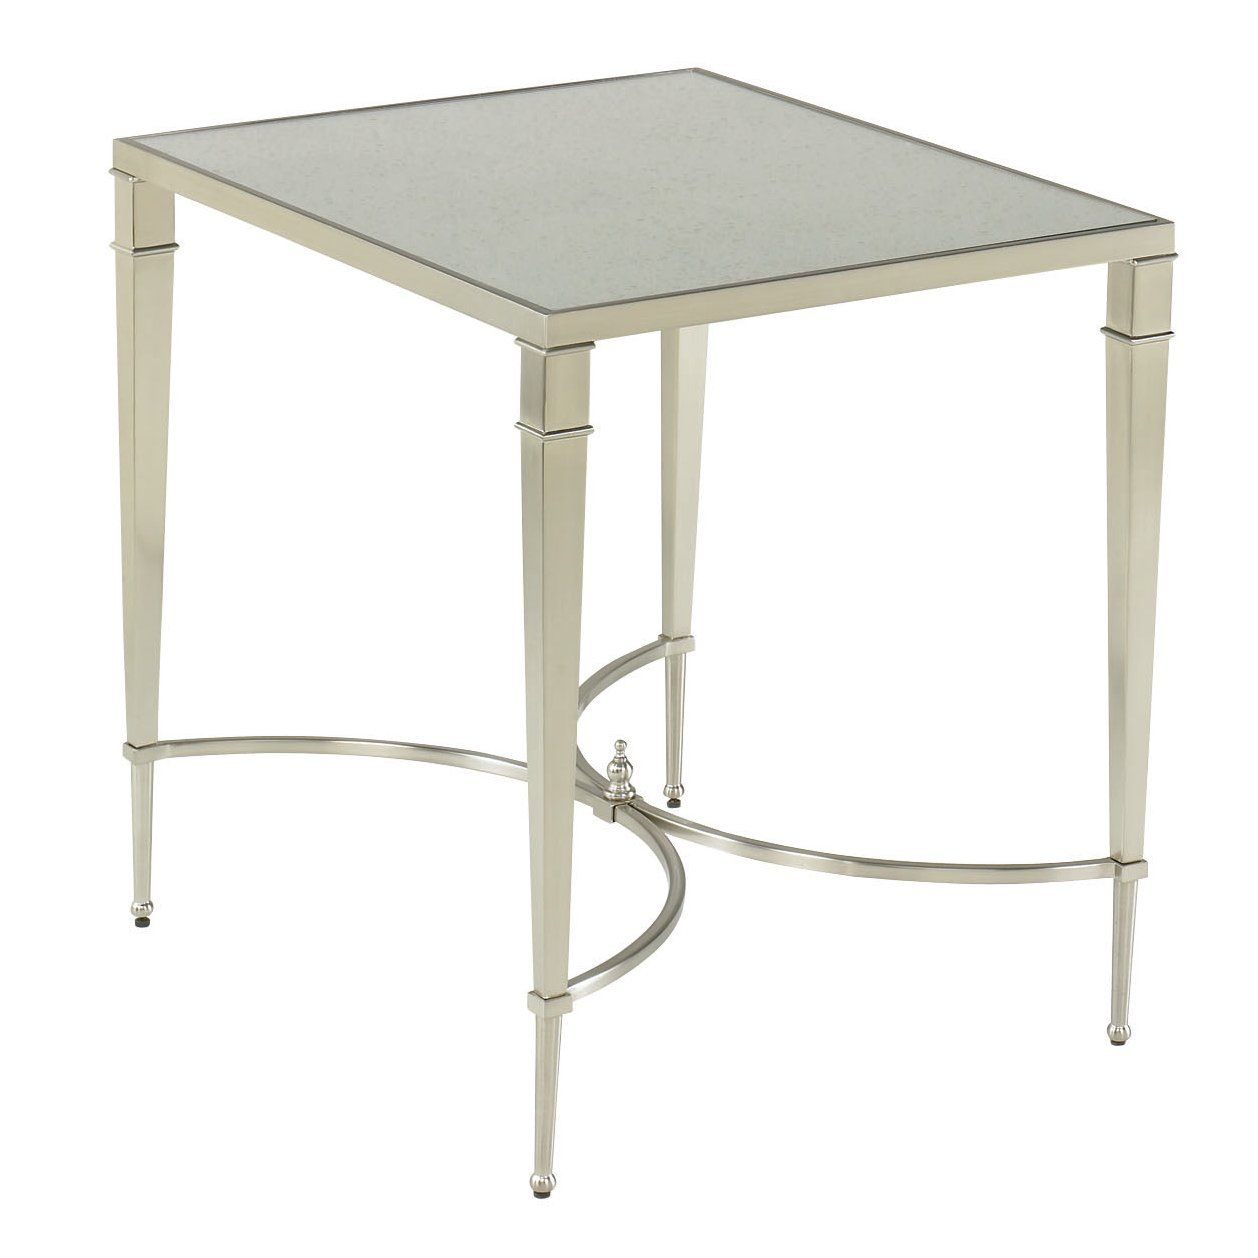 lenox end table products accent height bedroom high nightstand tall pedestal round all metal coffee italian home decor grey and white side farmhouse dining chairs square mirrored